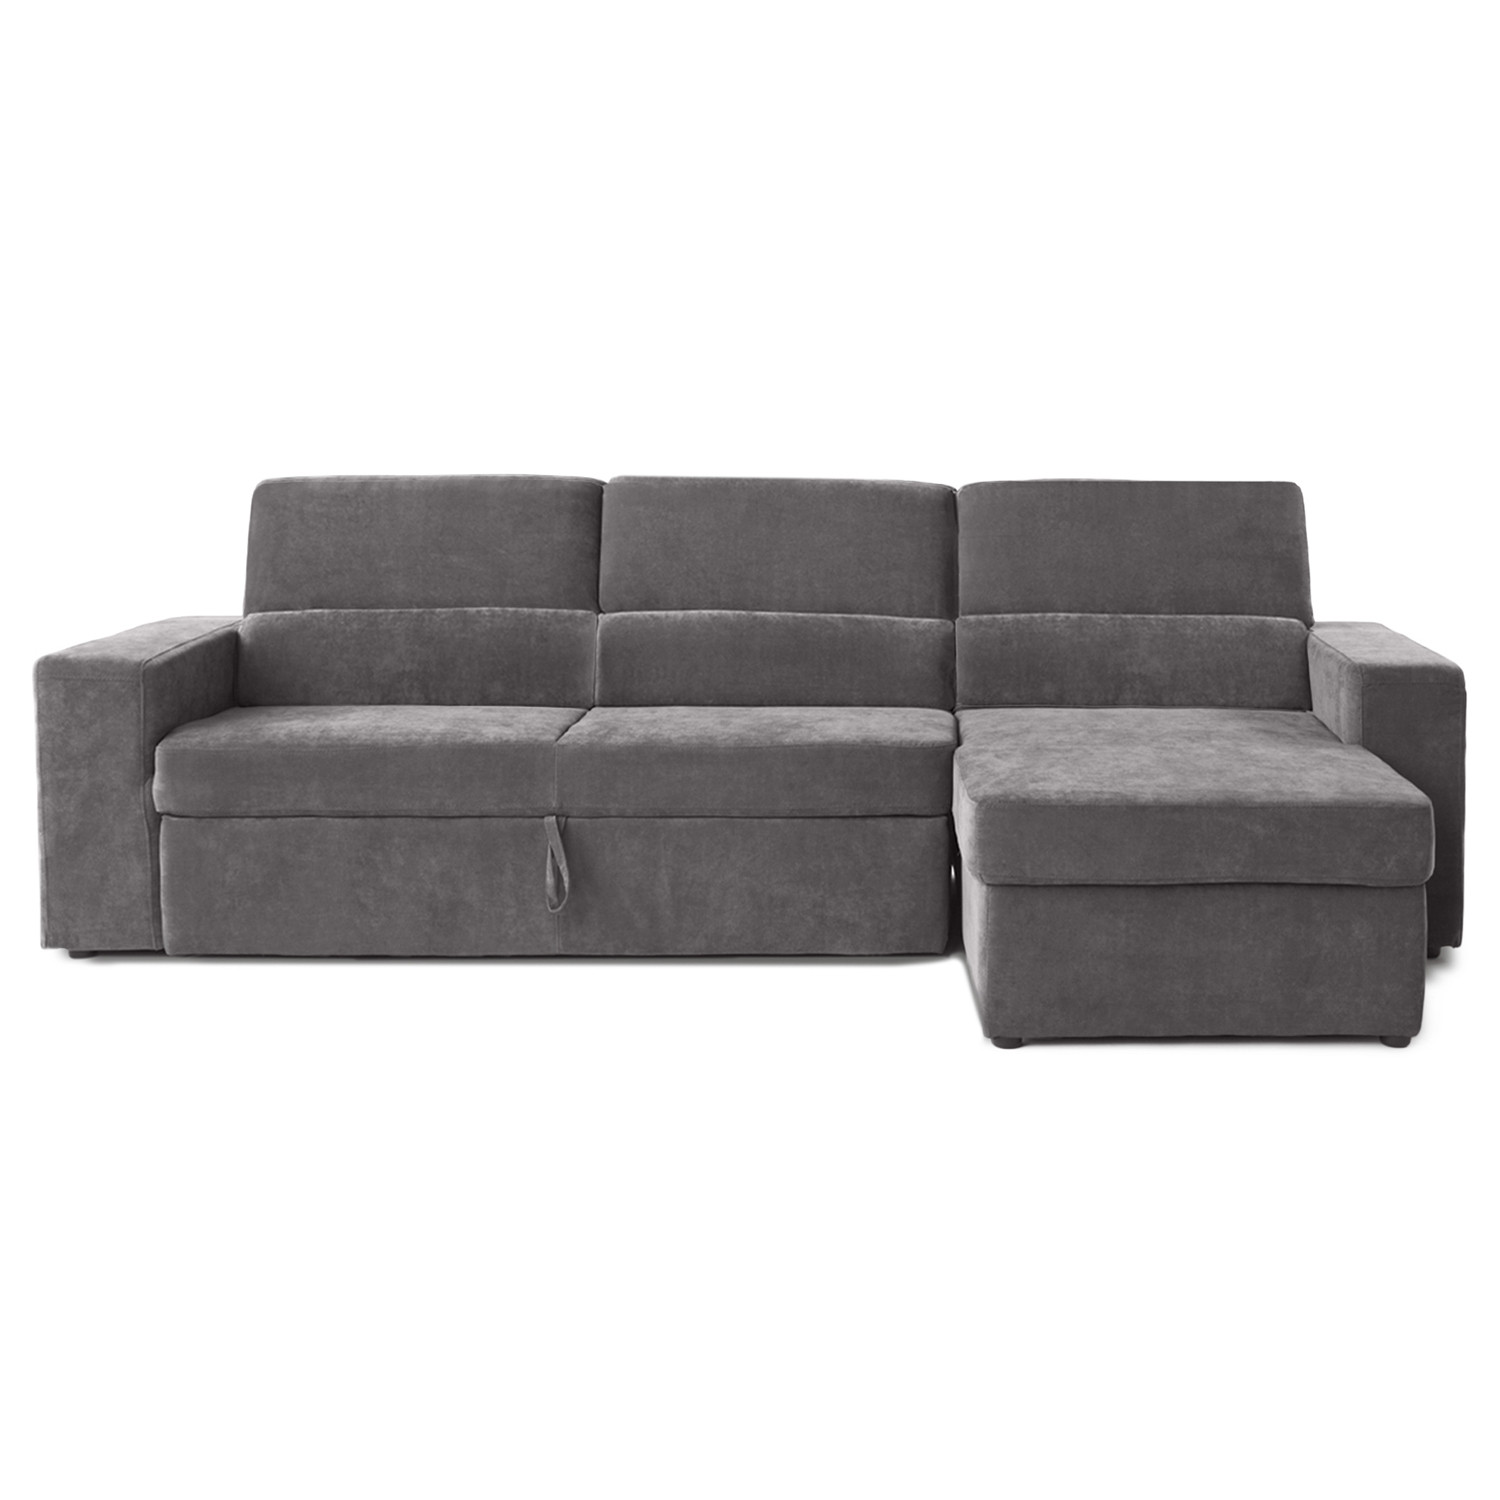 Clubber sleeper sectional left chaise black brown for Black sectional with chaise